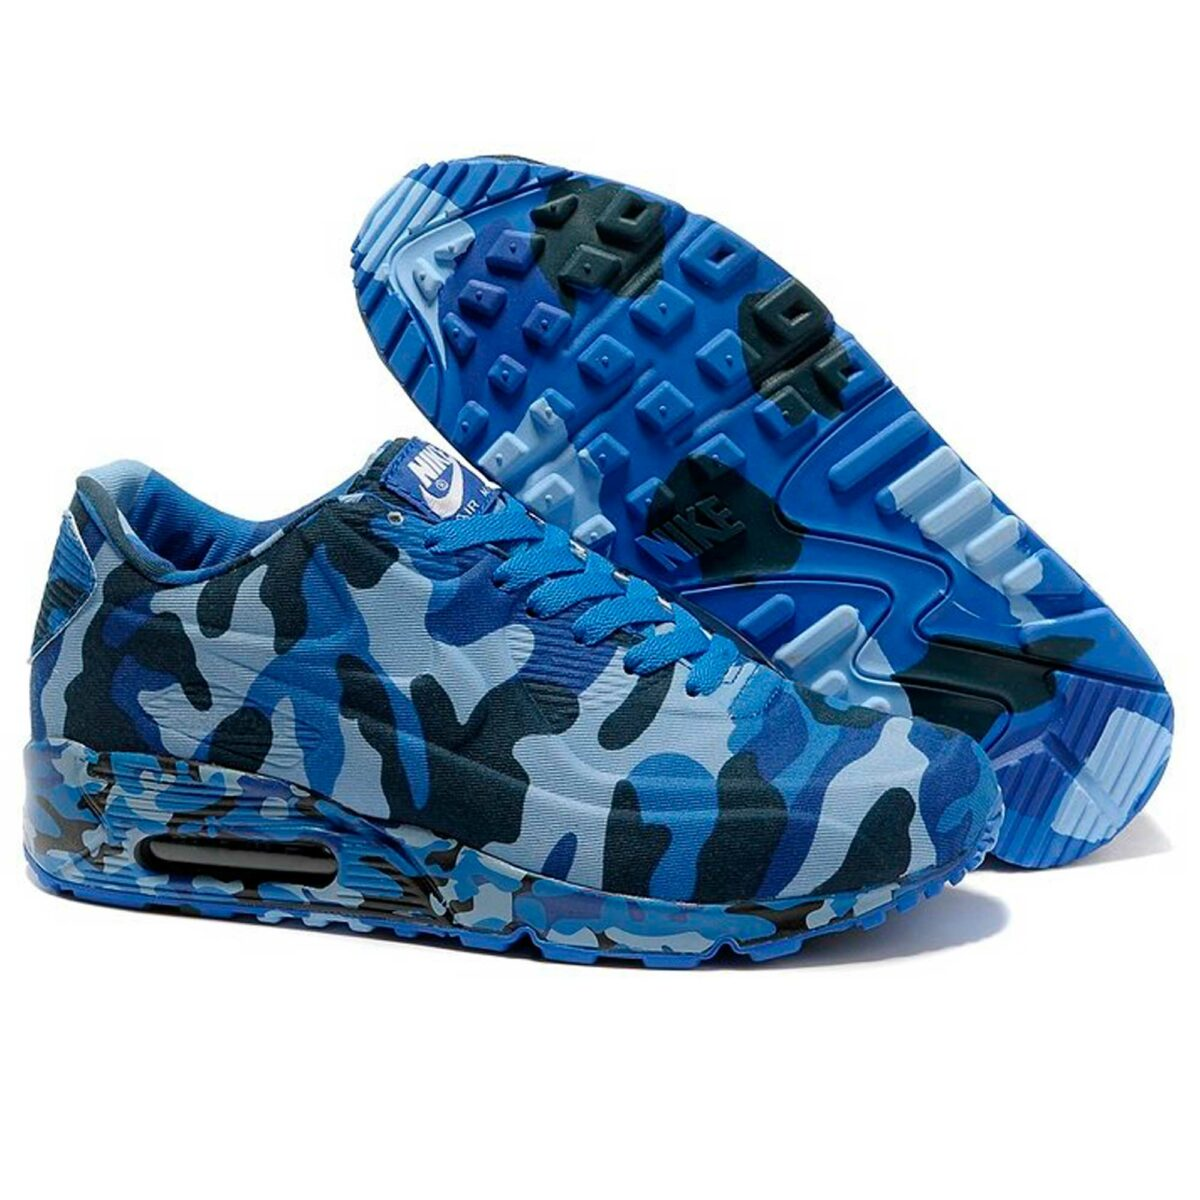 nike air max 90 VT camouflage blue gray 472513-009 купить